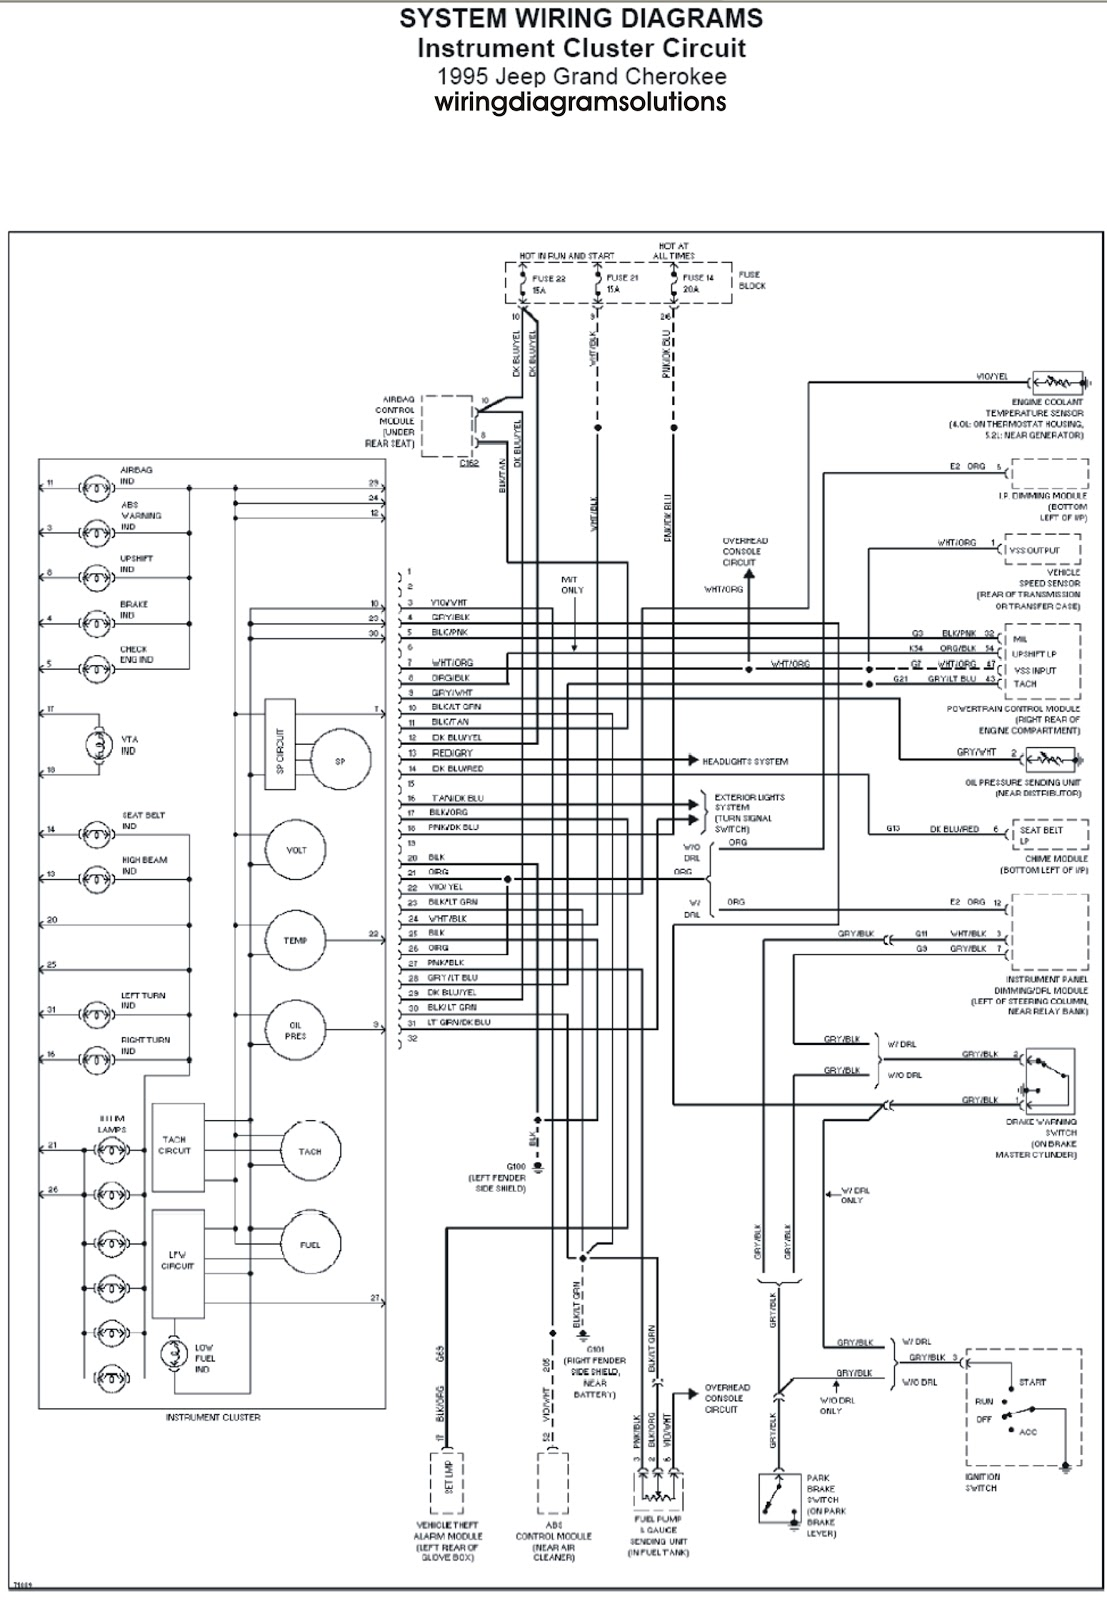 medium resolution of 1996 celica wiring diagram wiring diagram todays 2001 celica fuse diagram 1996 celica ignition wiring diagram